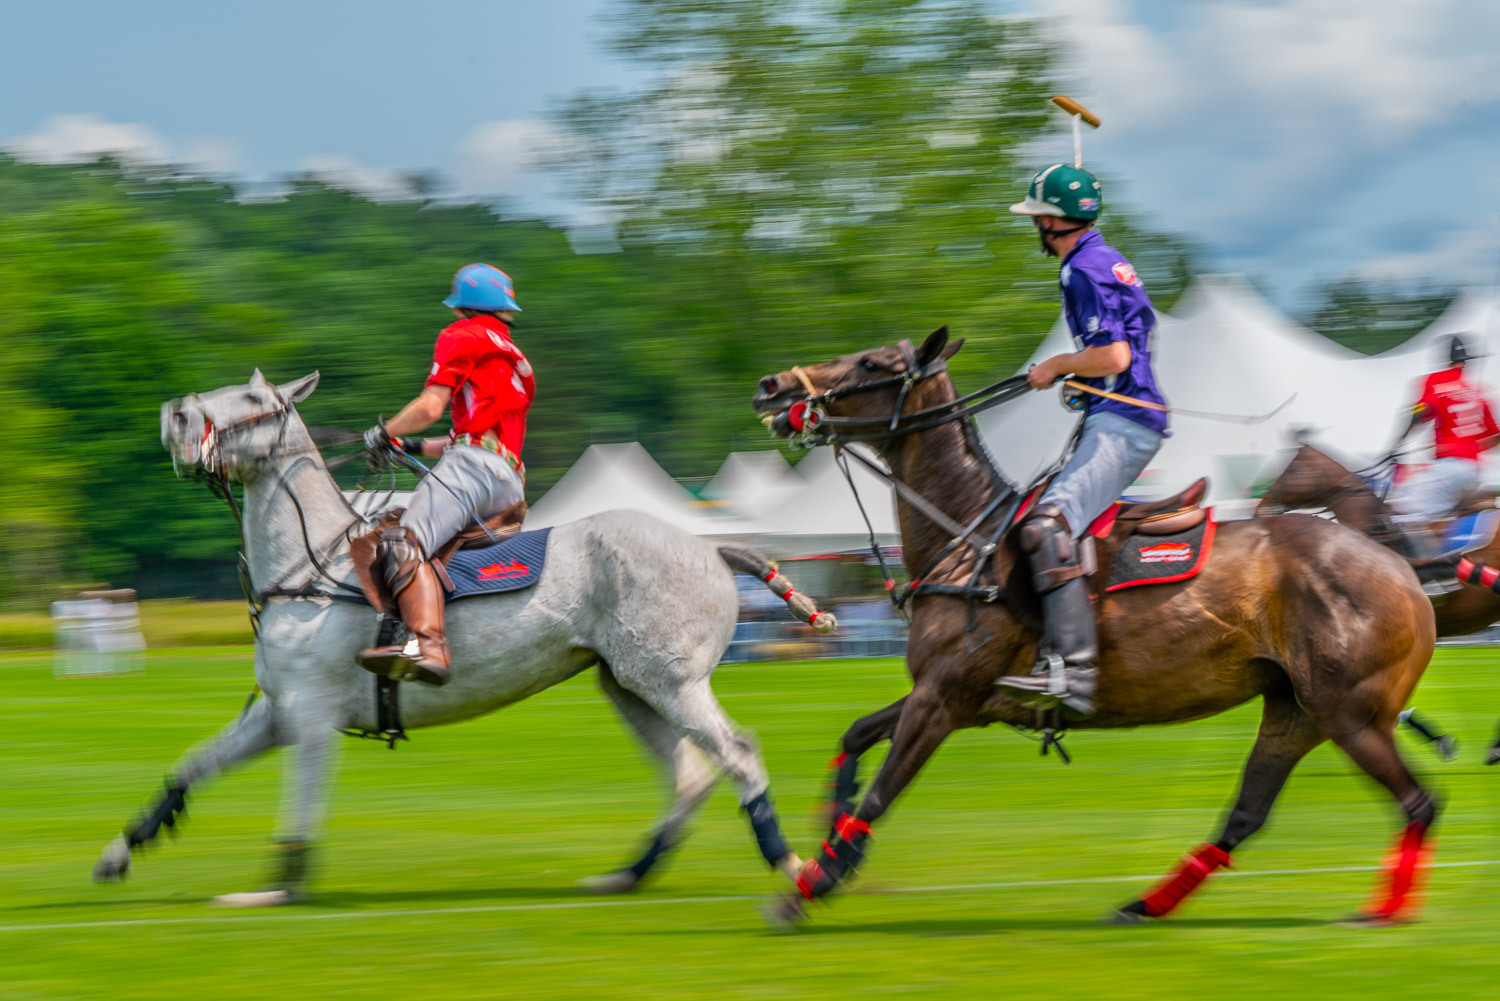 Polo ponies stop on a dime muscles flexed at the mashomack polo club in pine plainsj, ny.  The action blur creats a sense of speed and movement..jpg